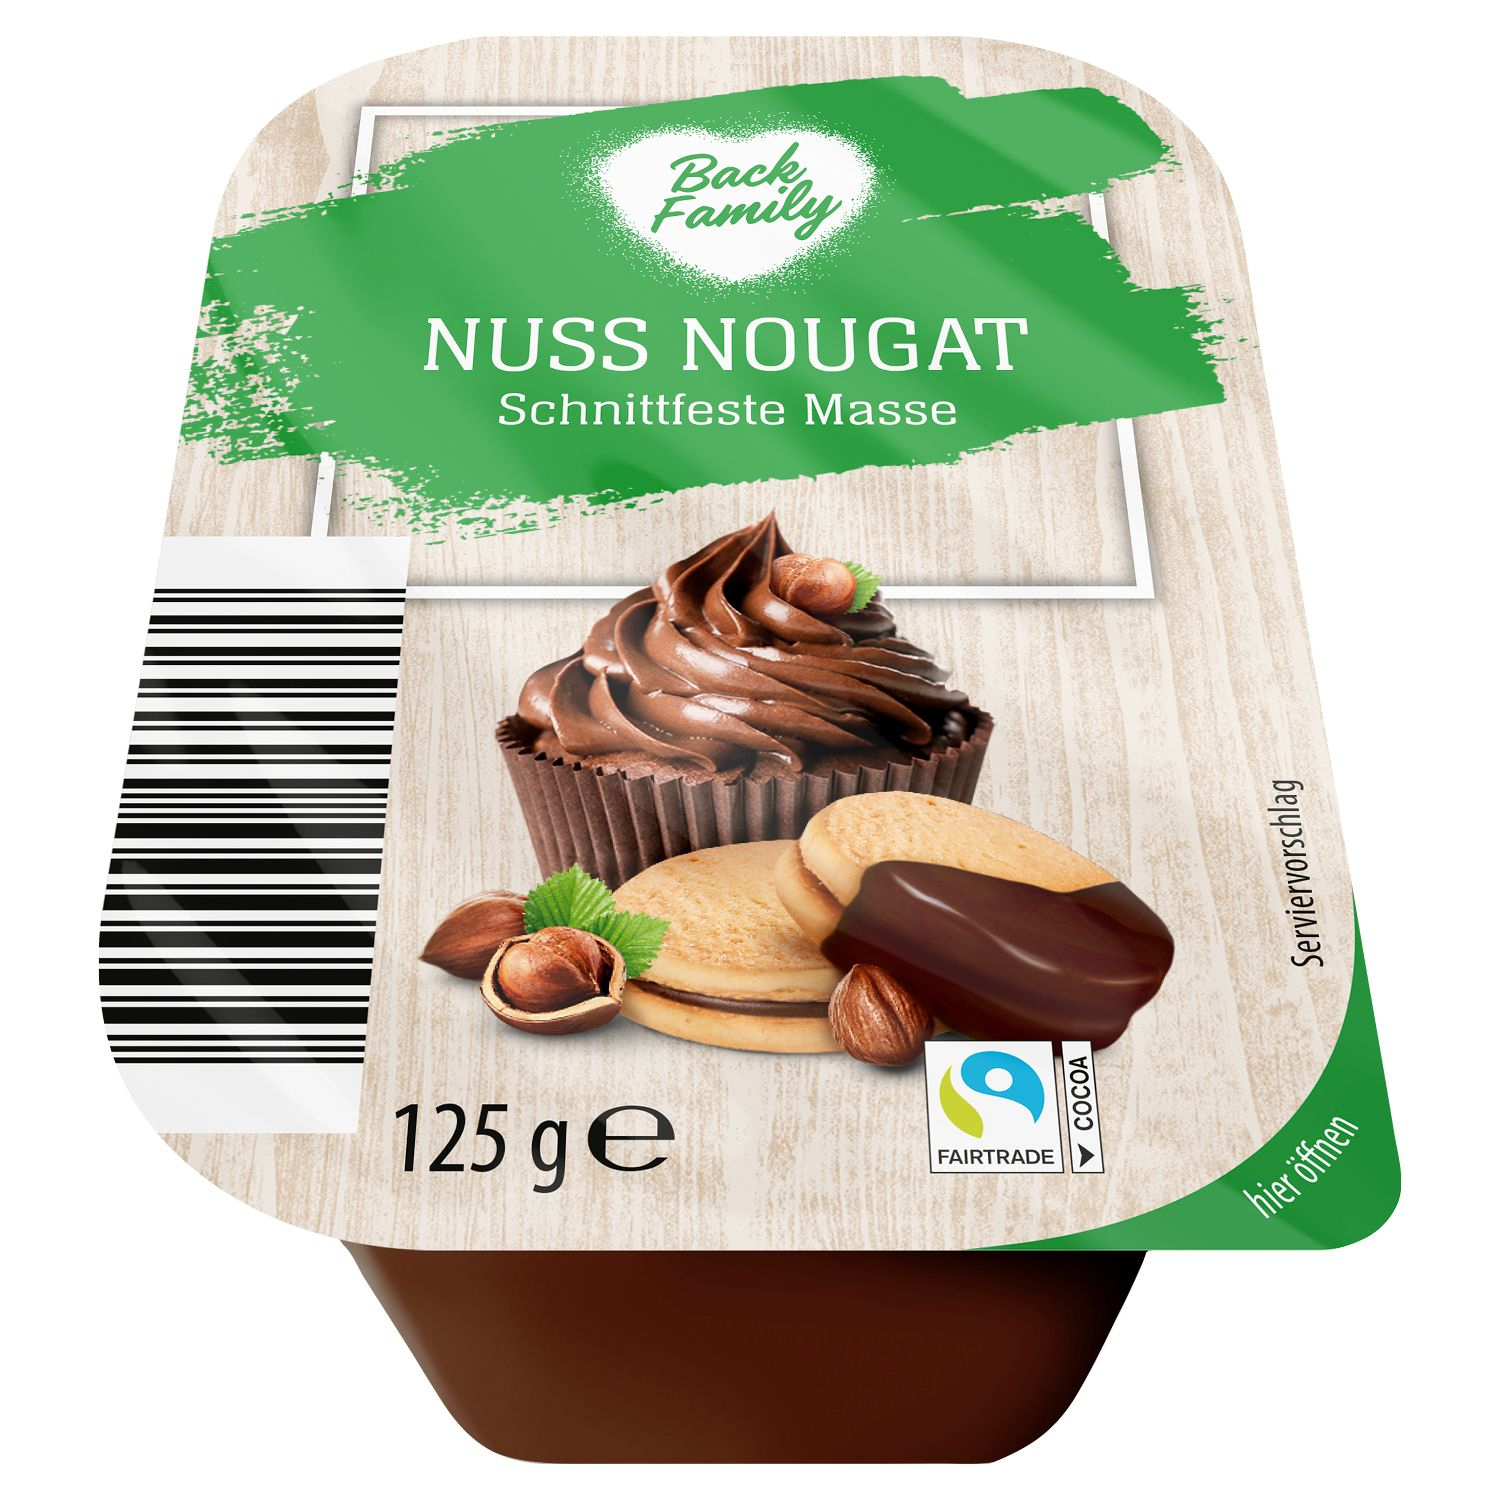 Back Family Nuss Nougat 125 g